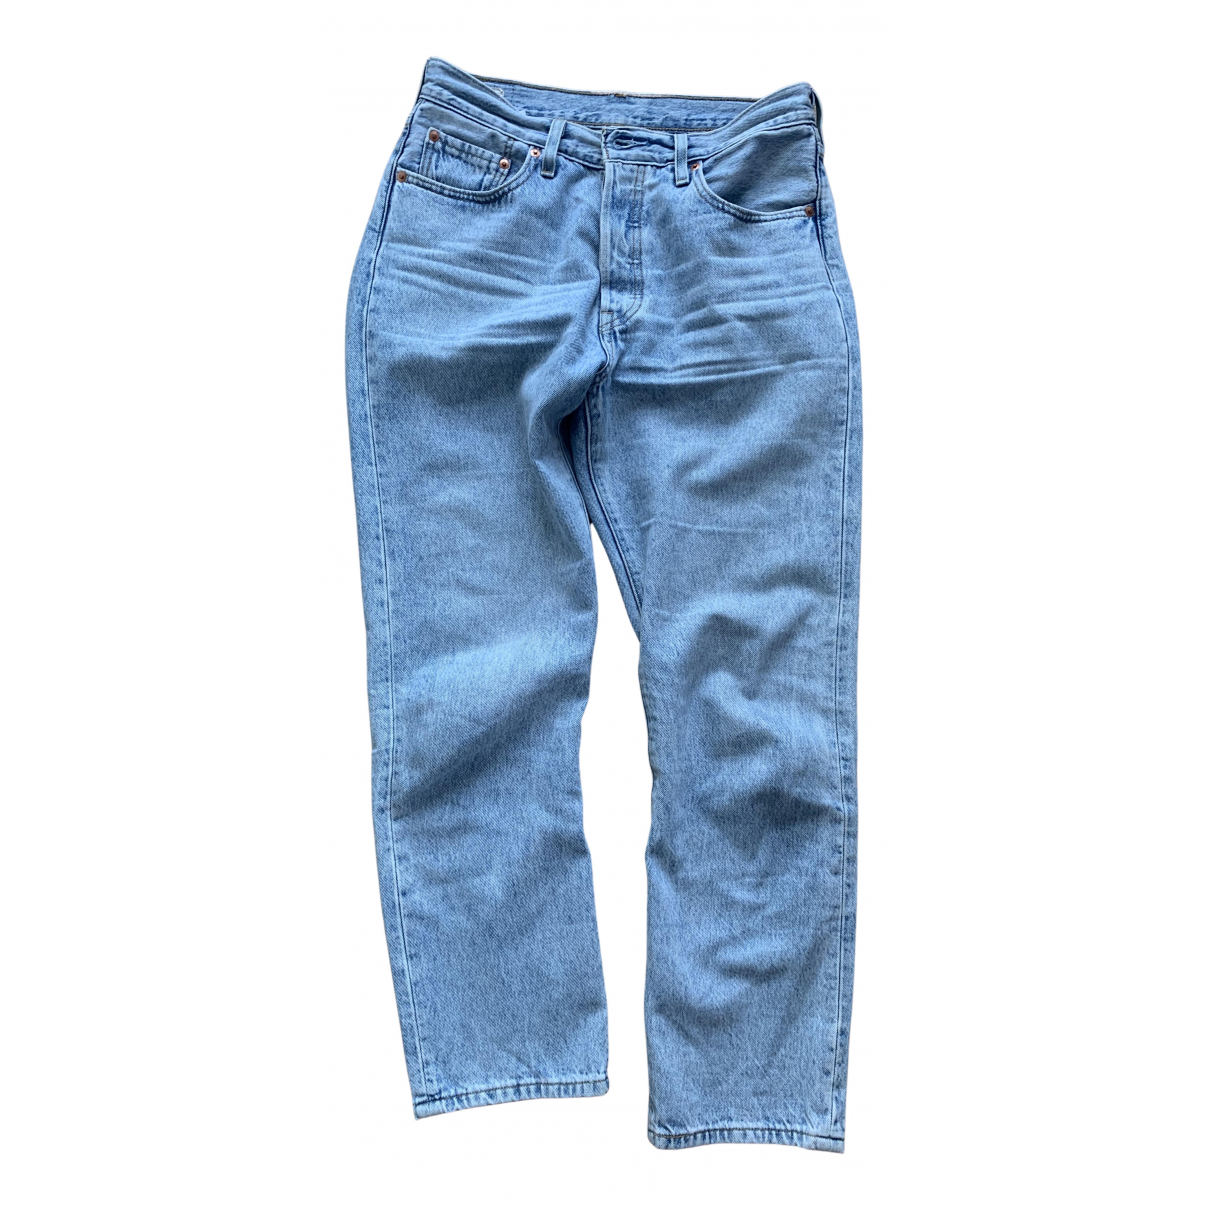 Levi's 501 Blue Cotton Jeans for Women 28 US